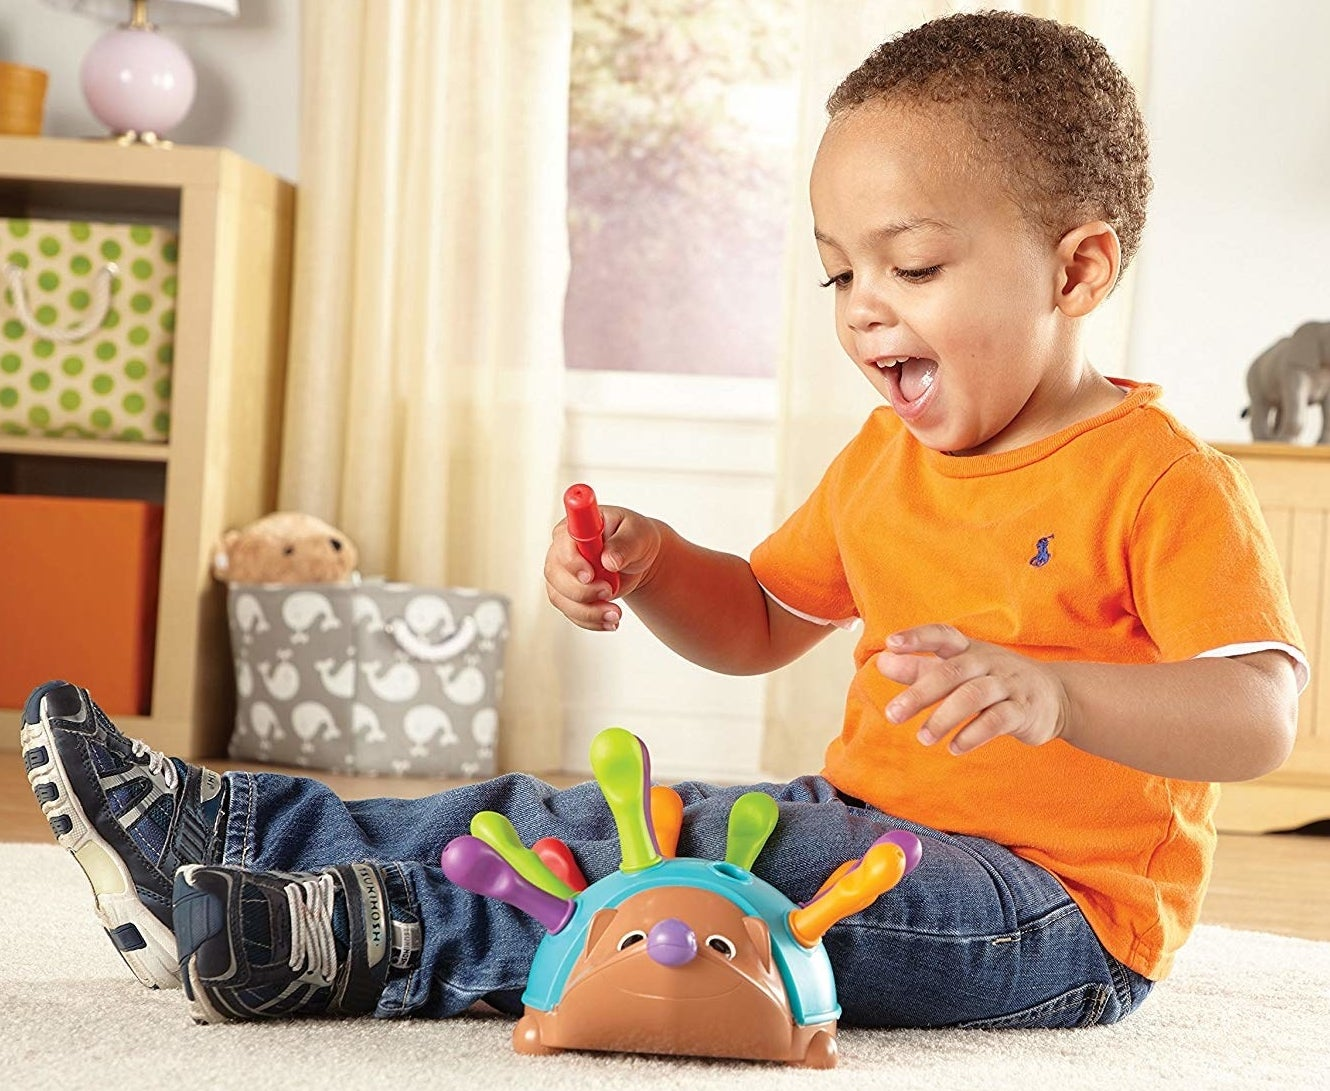 Child model playing with a colorful hedgehog toy